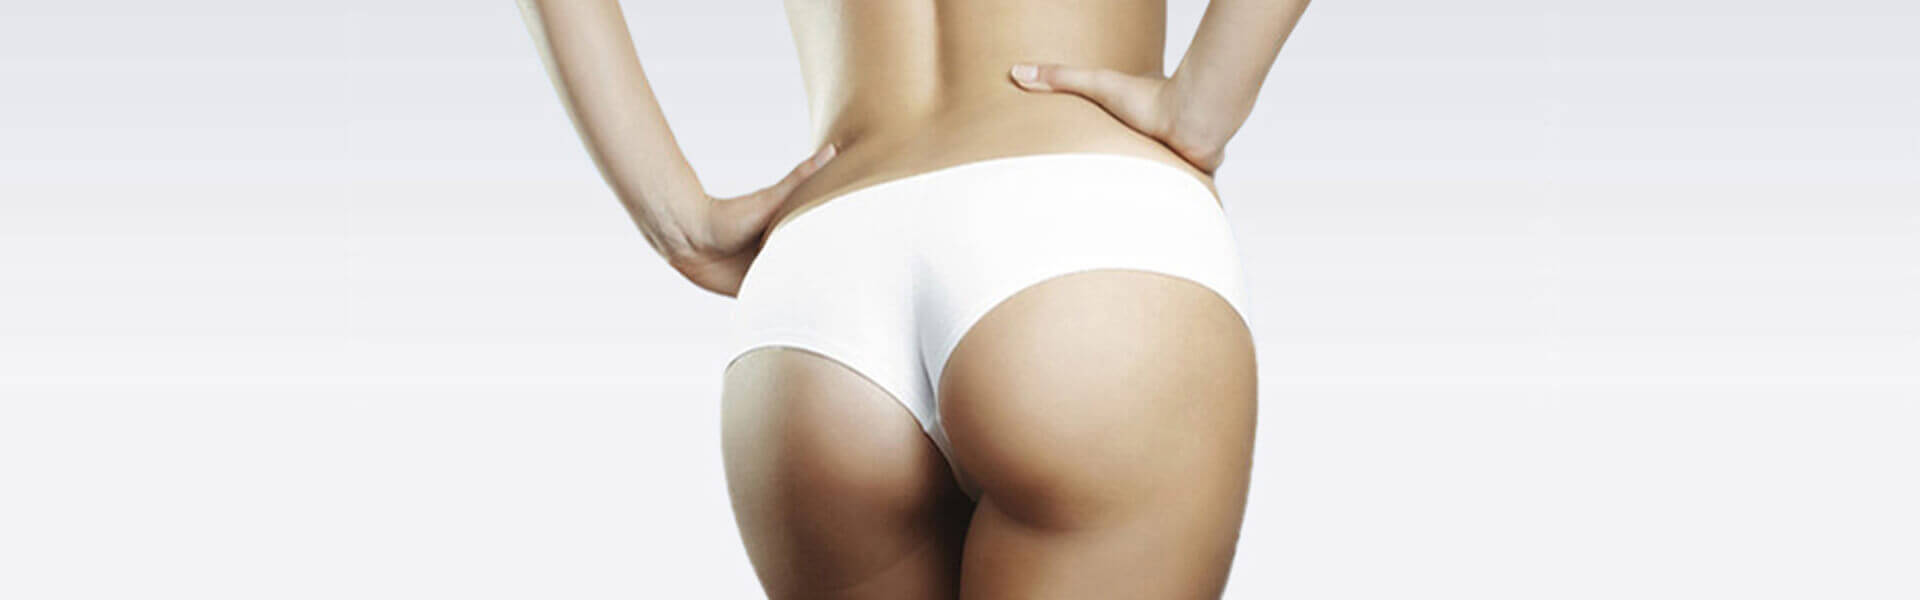 Picture of a woman wearing a white bathing suit depicting plastic surgery in San José, Costa Rica.